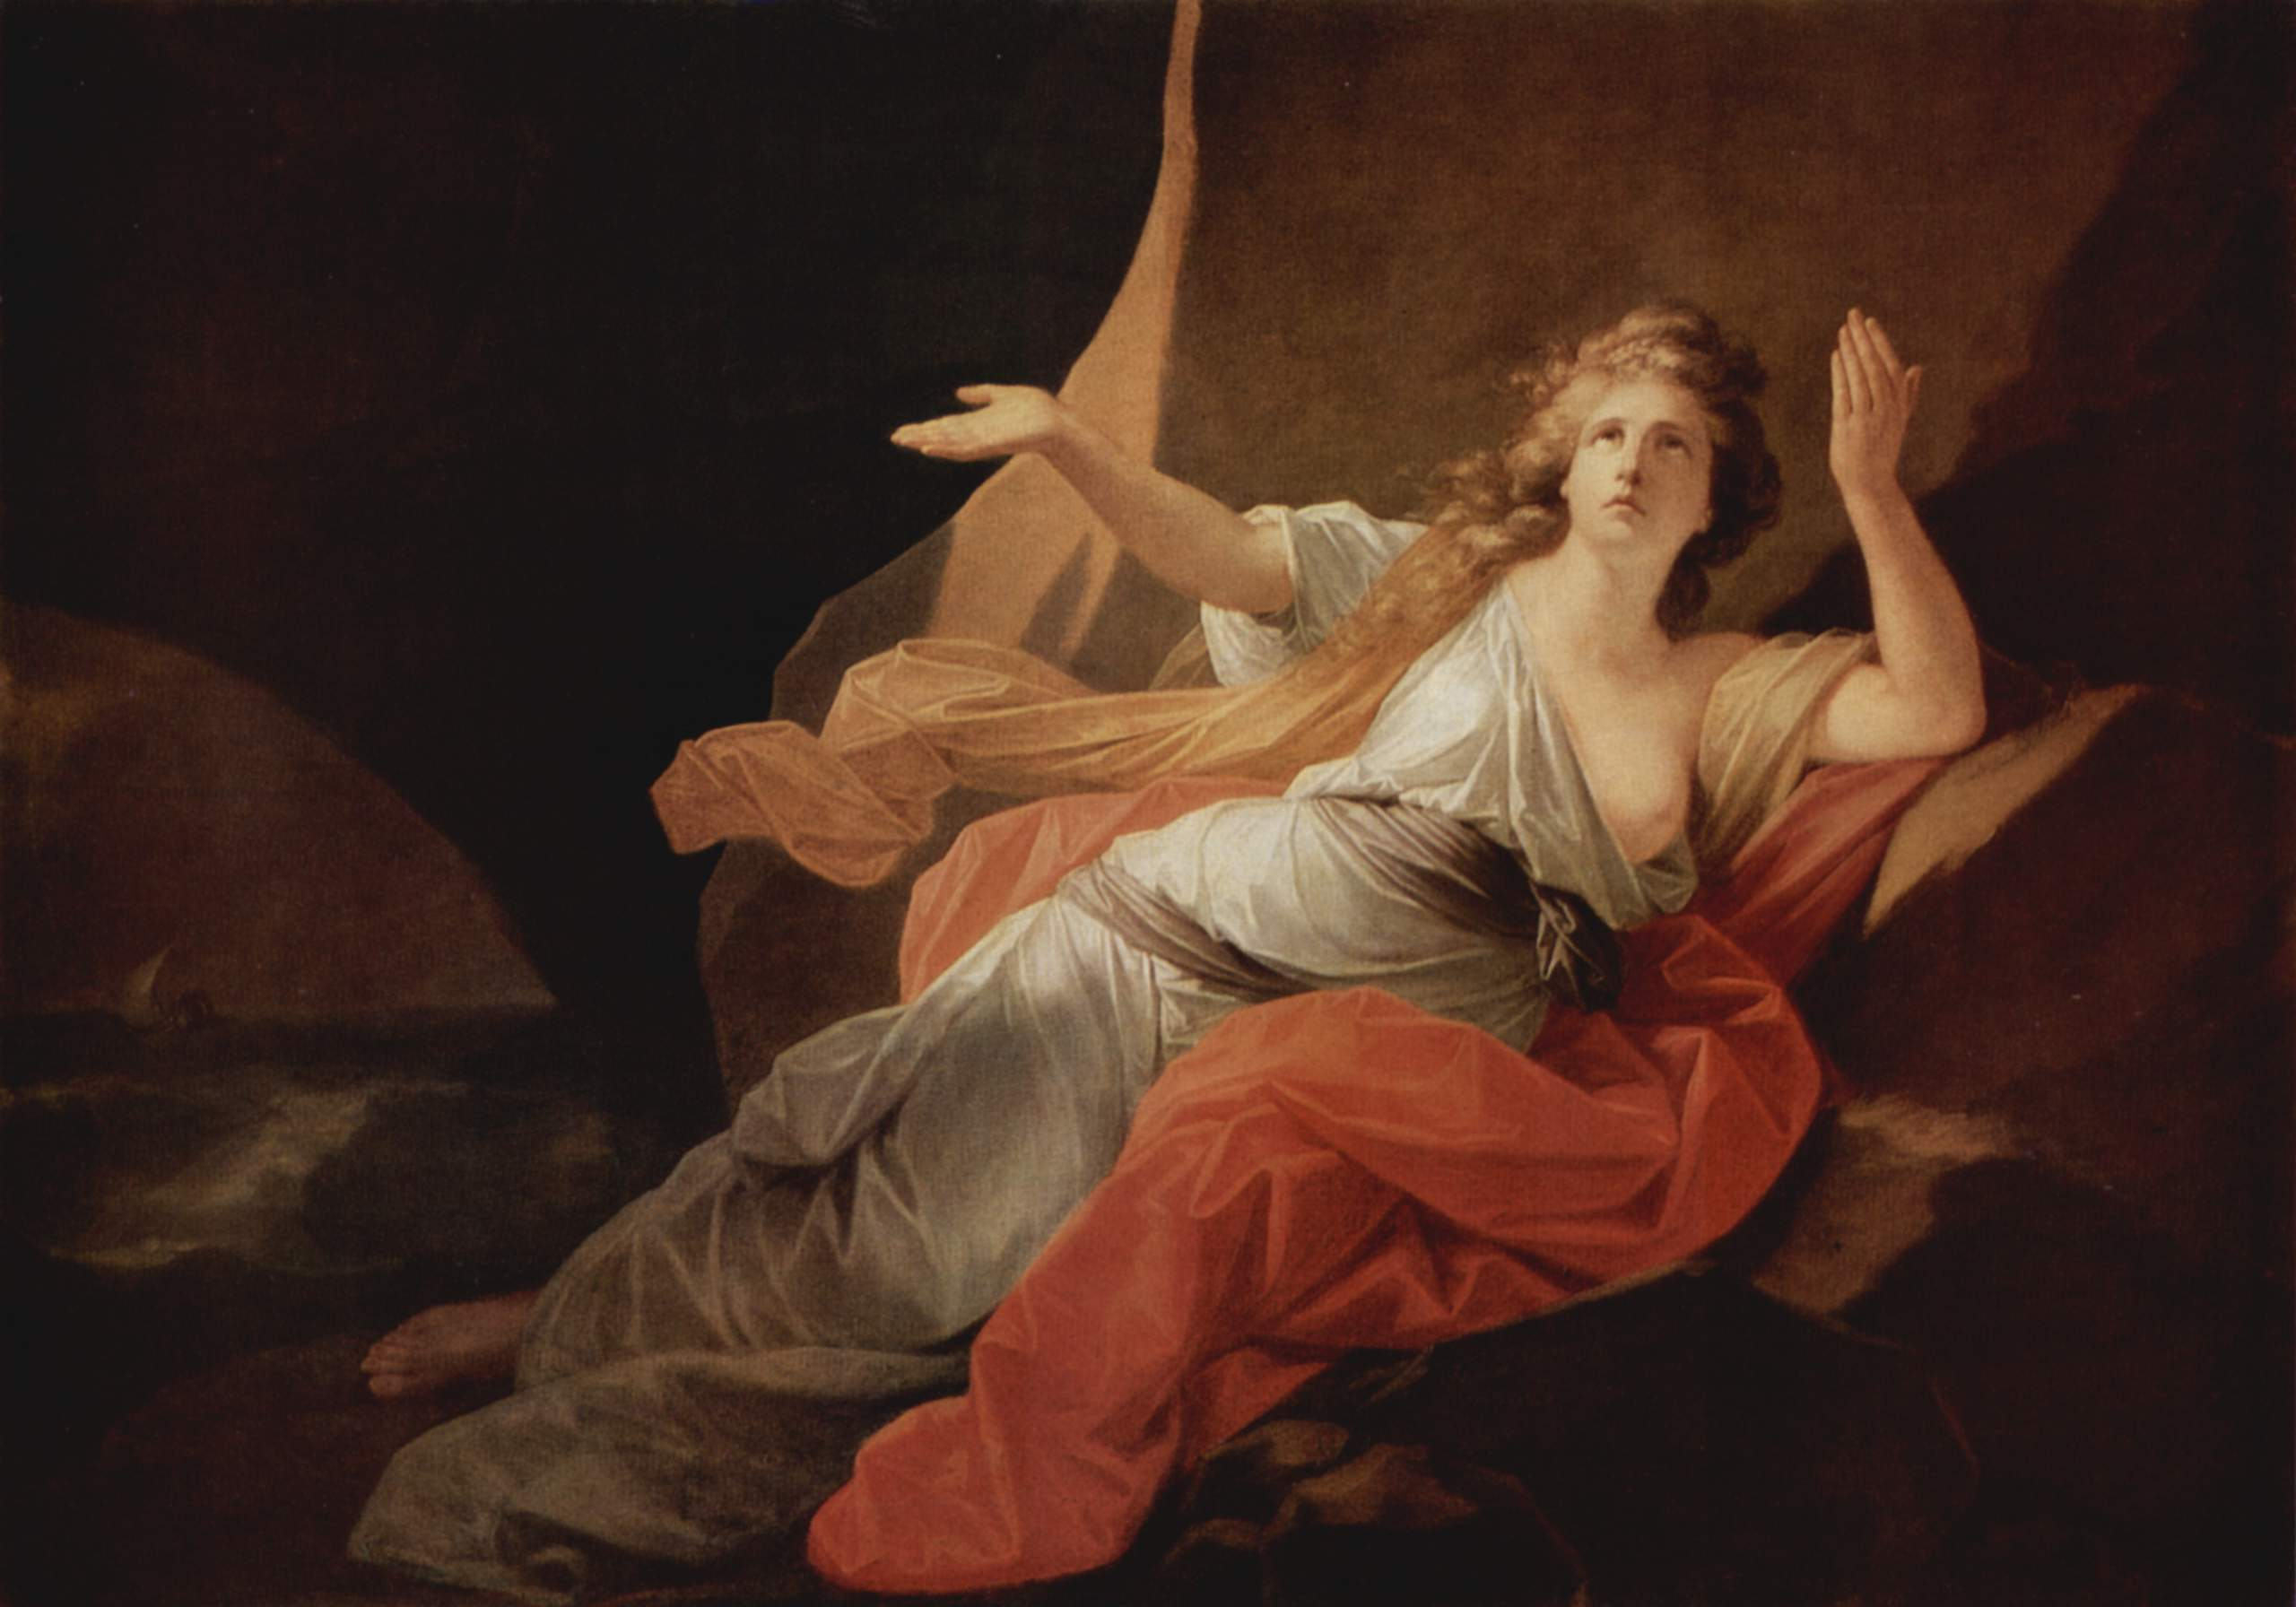 the queen of carthage What is one important way marlowe's dido, queen of carthage deviates from his source material, virgil's aeneid.